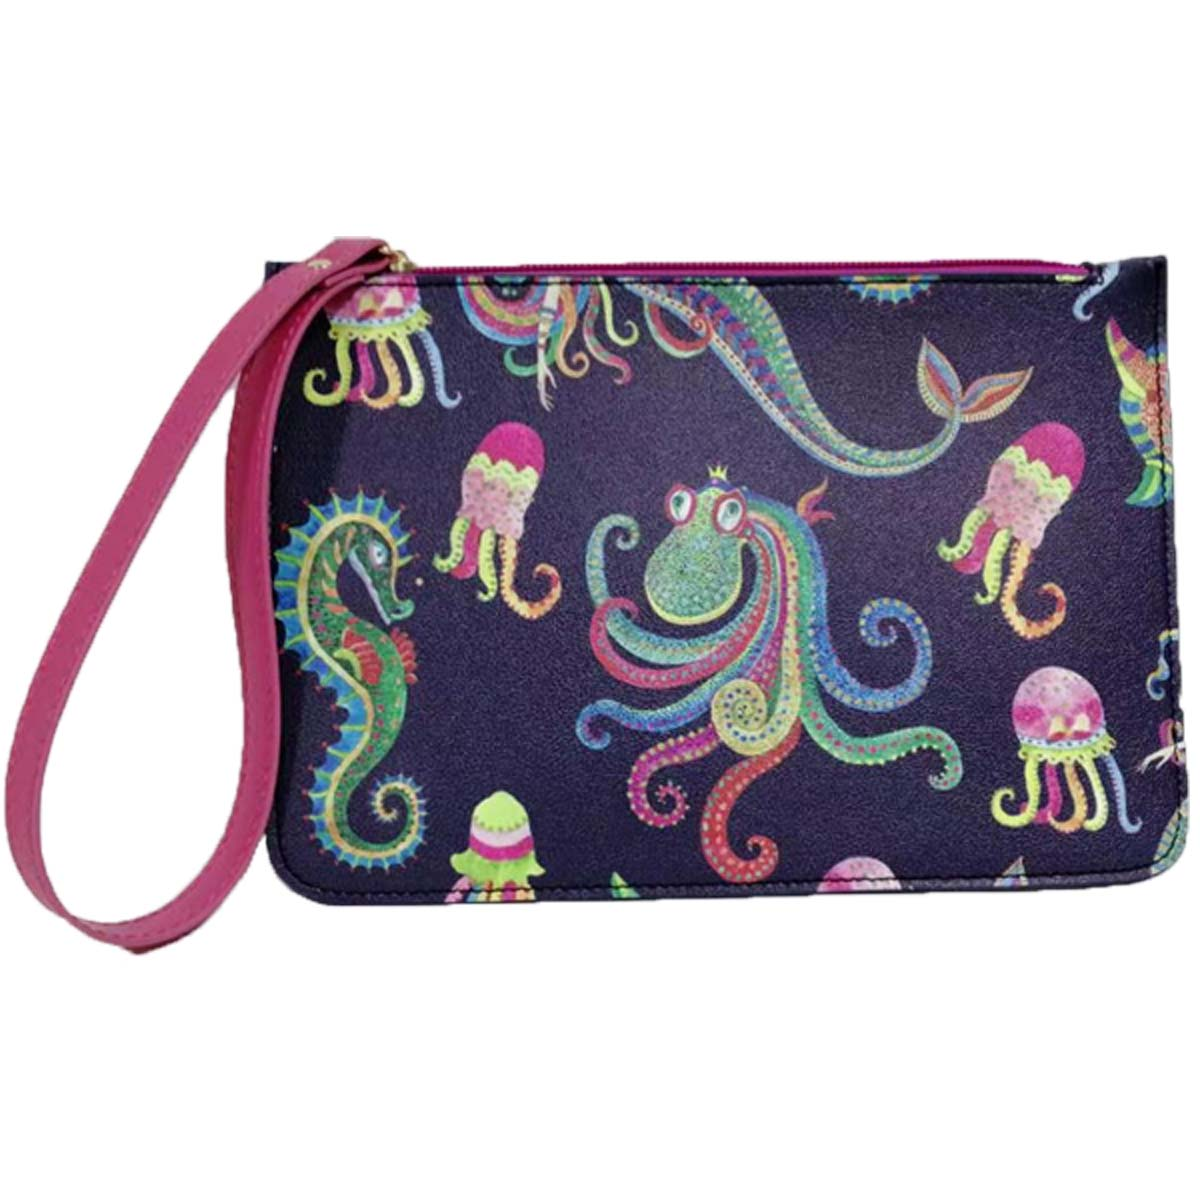 Boho Mermaid Leatherette Wristlet